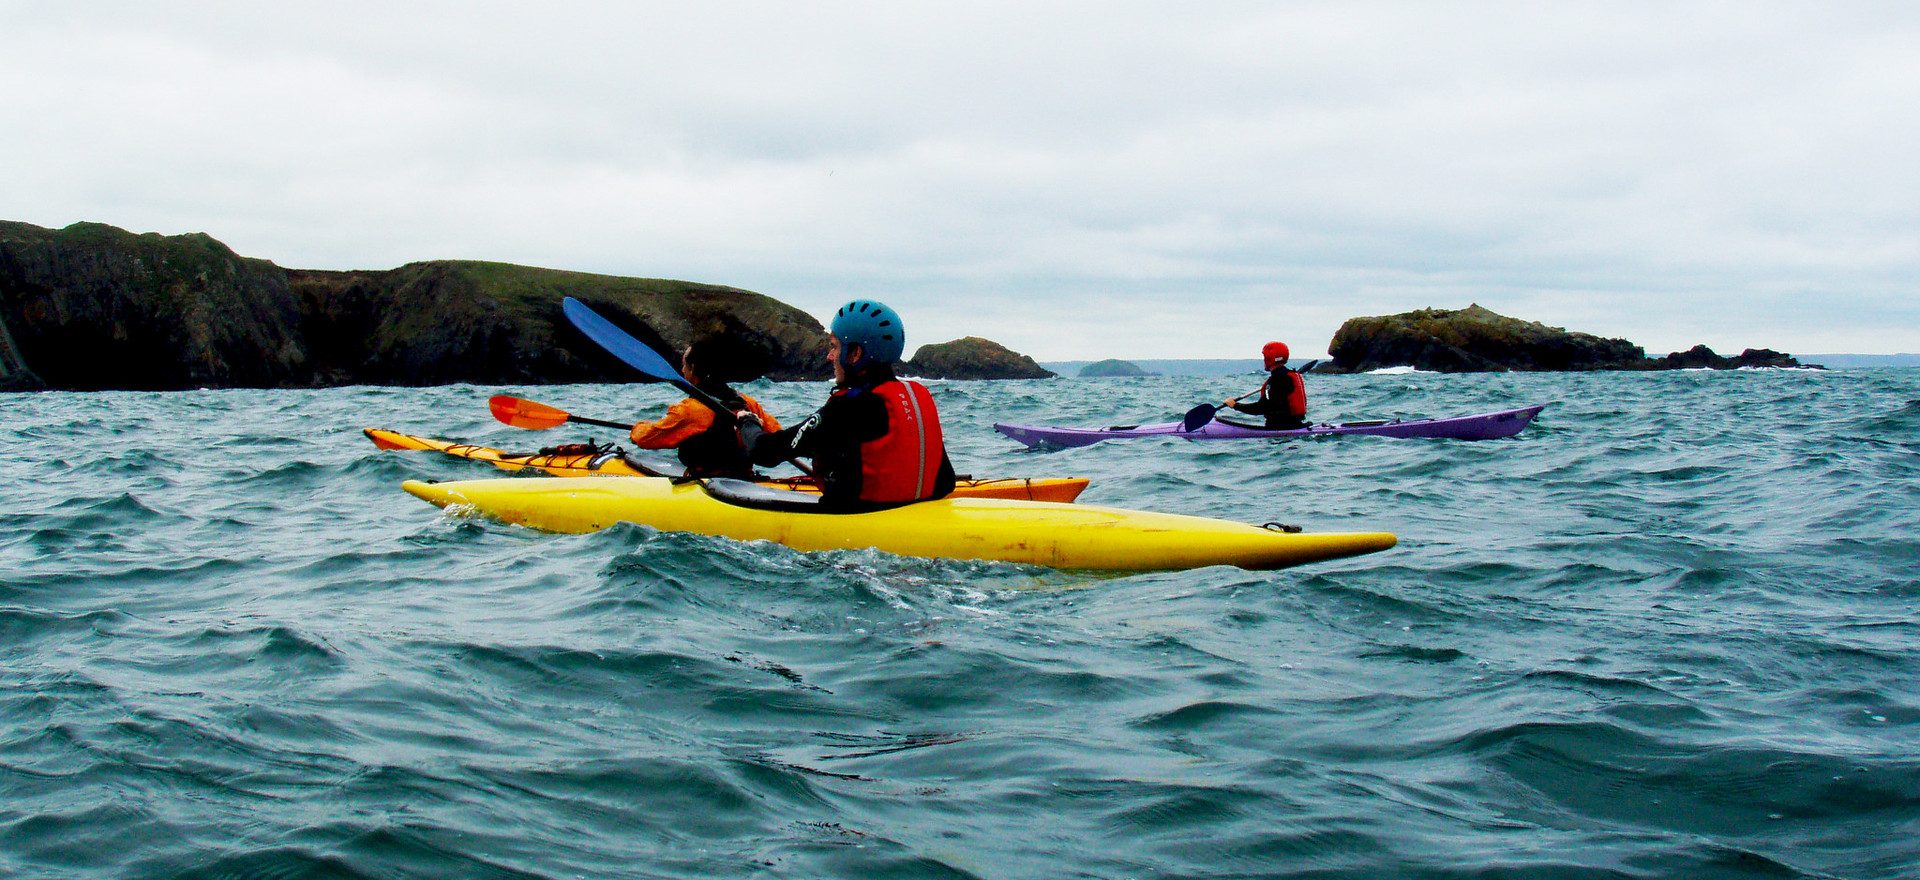 Kayaking off the coast of Wales